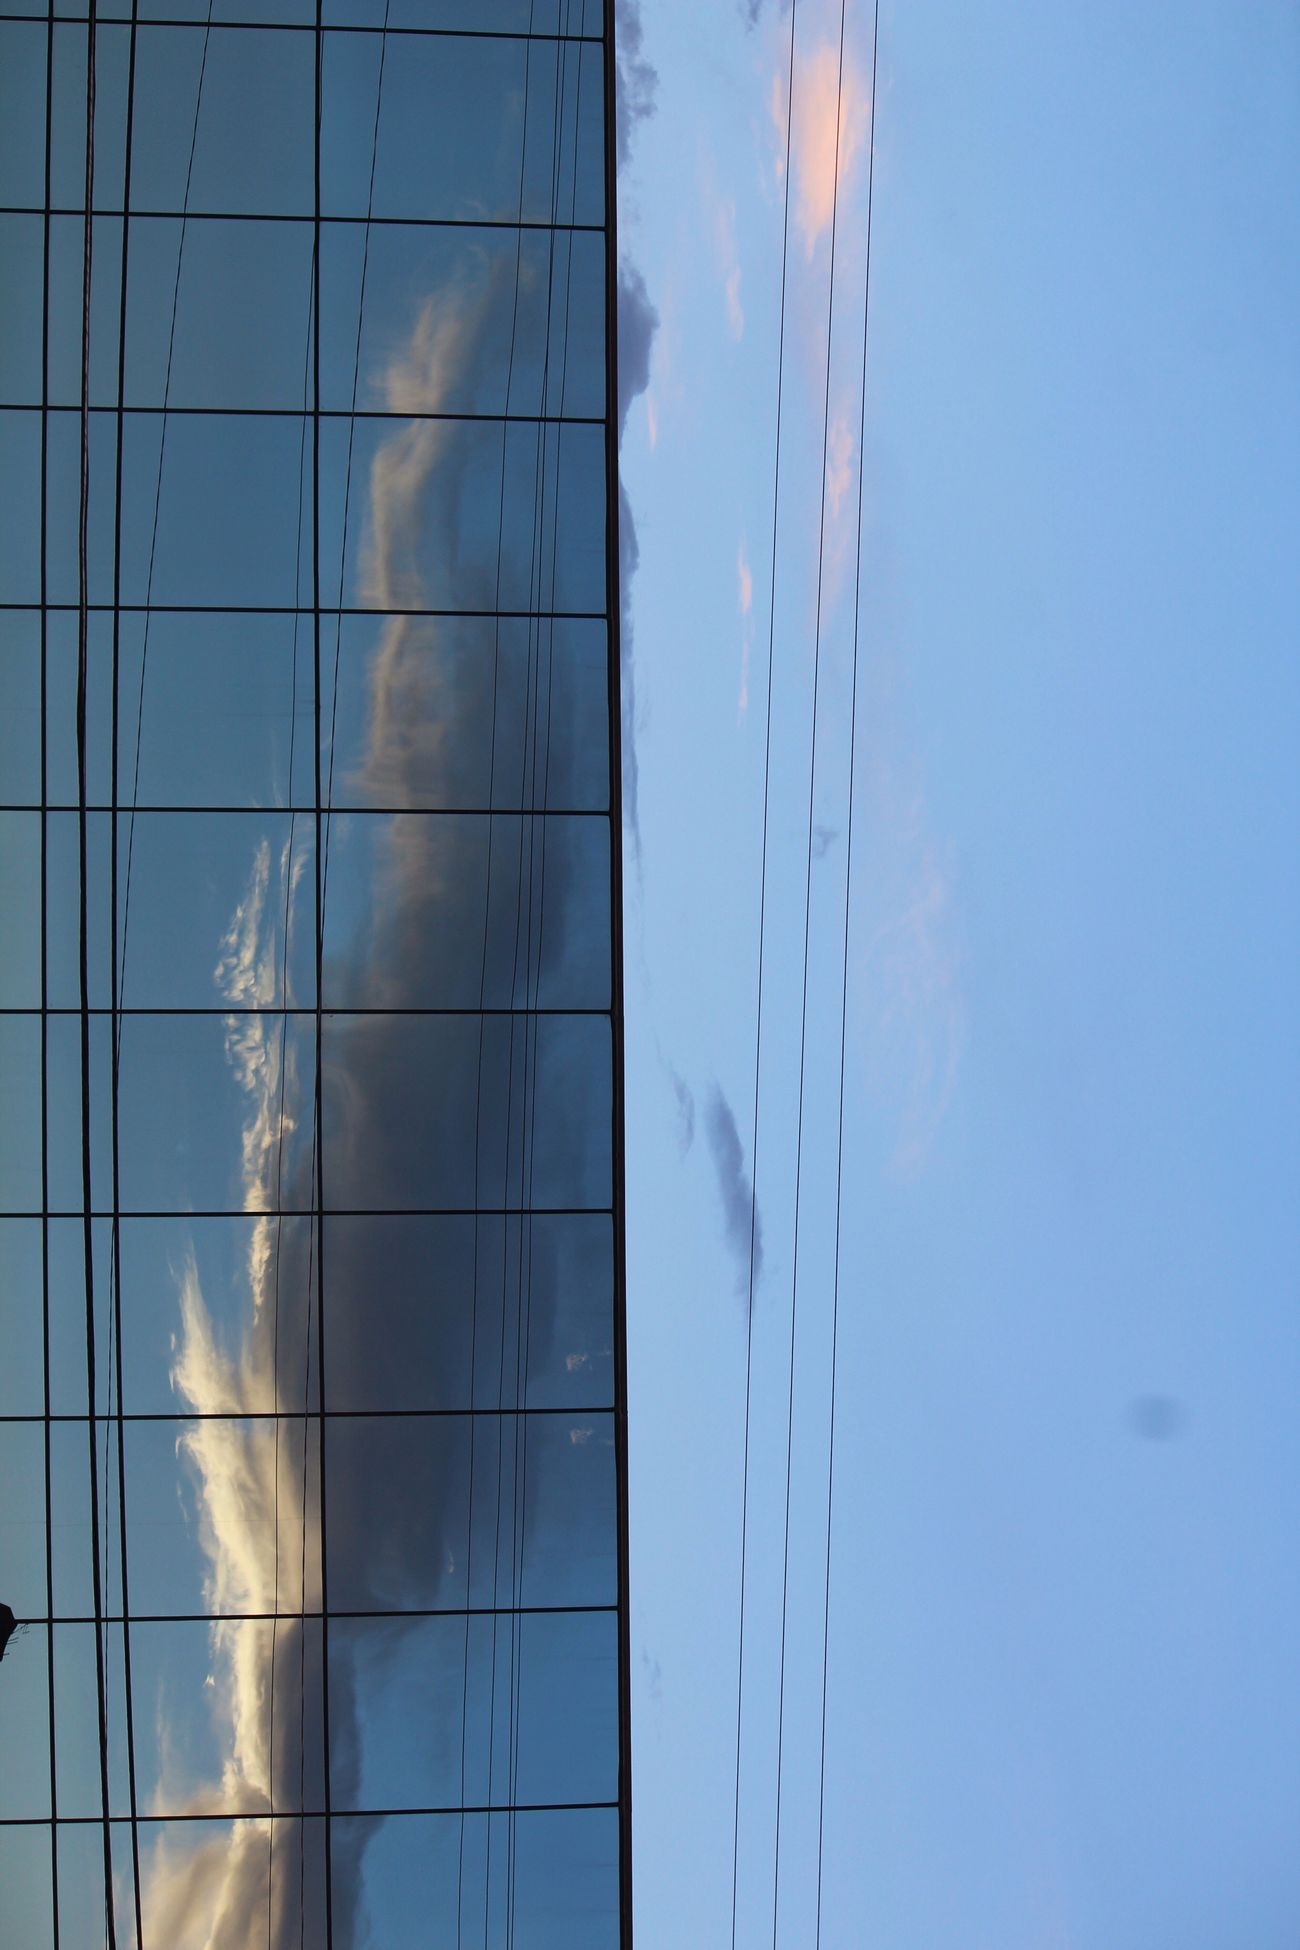 People And Places Downtown El Paso Texas Skies Cityscapes Blue Reflection